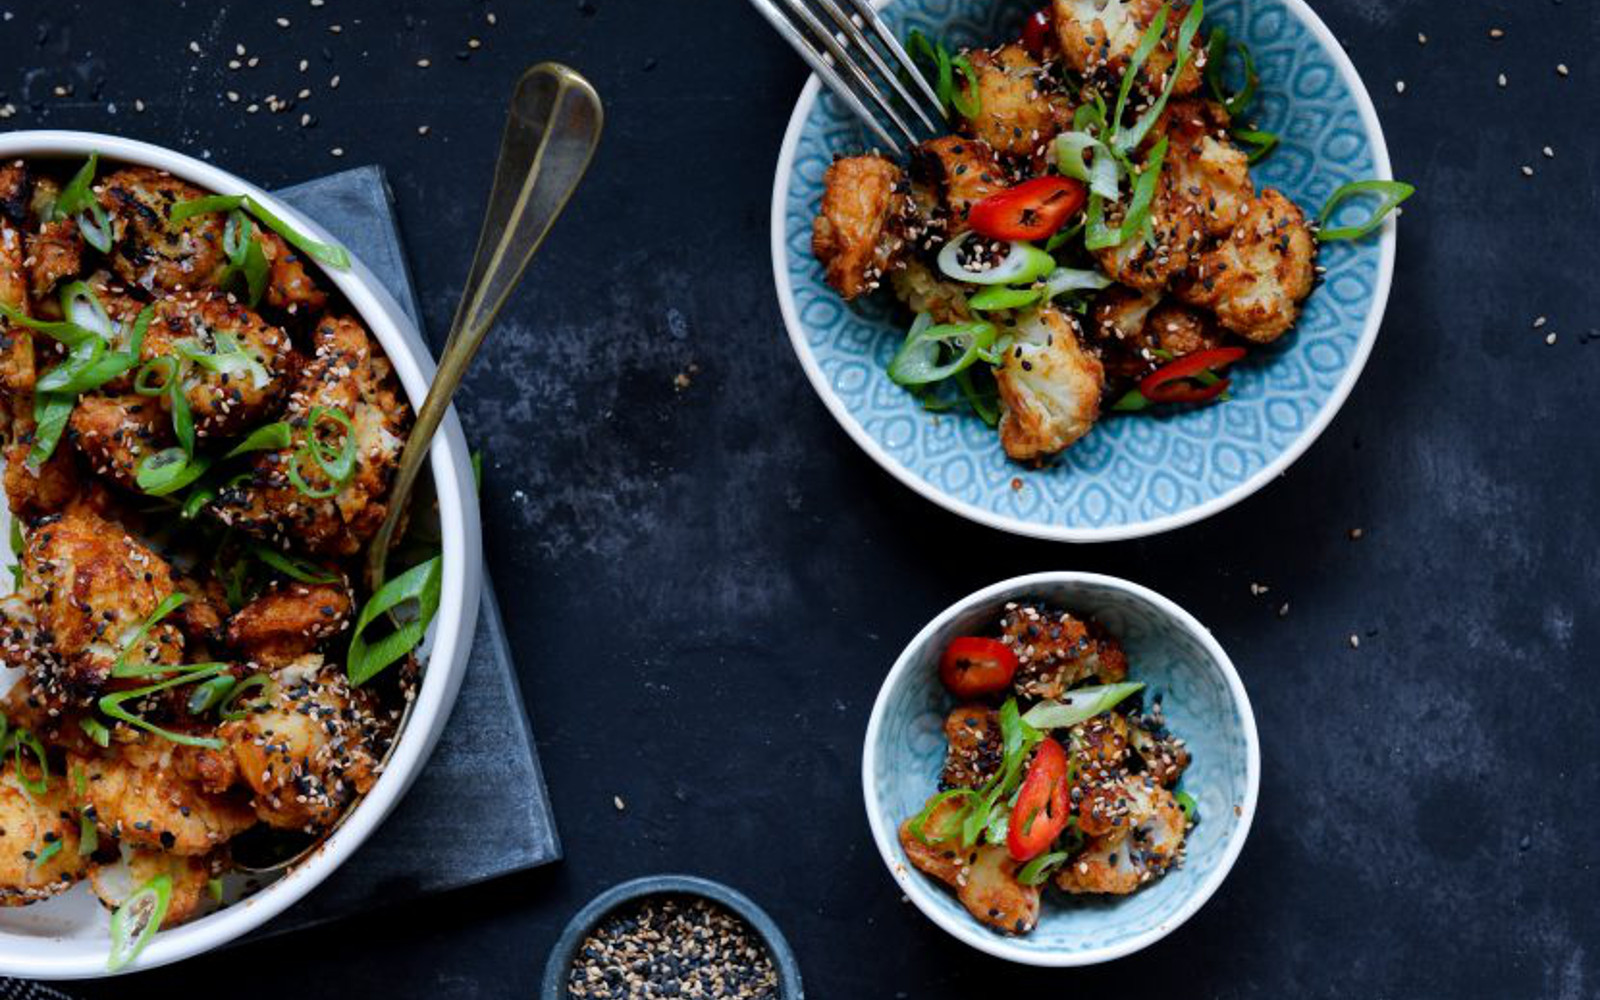 Vegan Gluten-Free Sticky Spicy Cauliflower Topped with sesame seeds, green onion, and red peppers